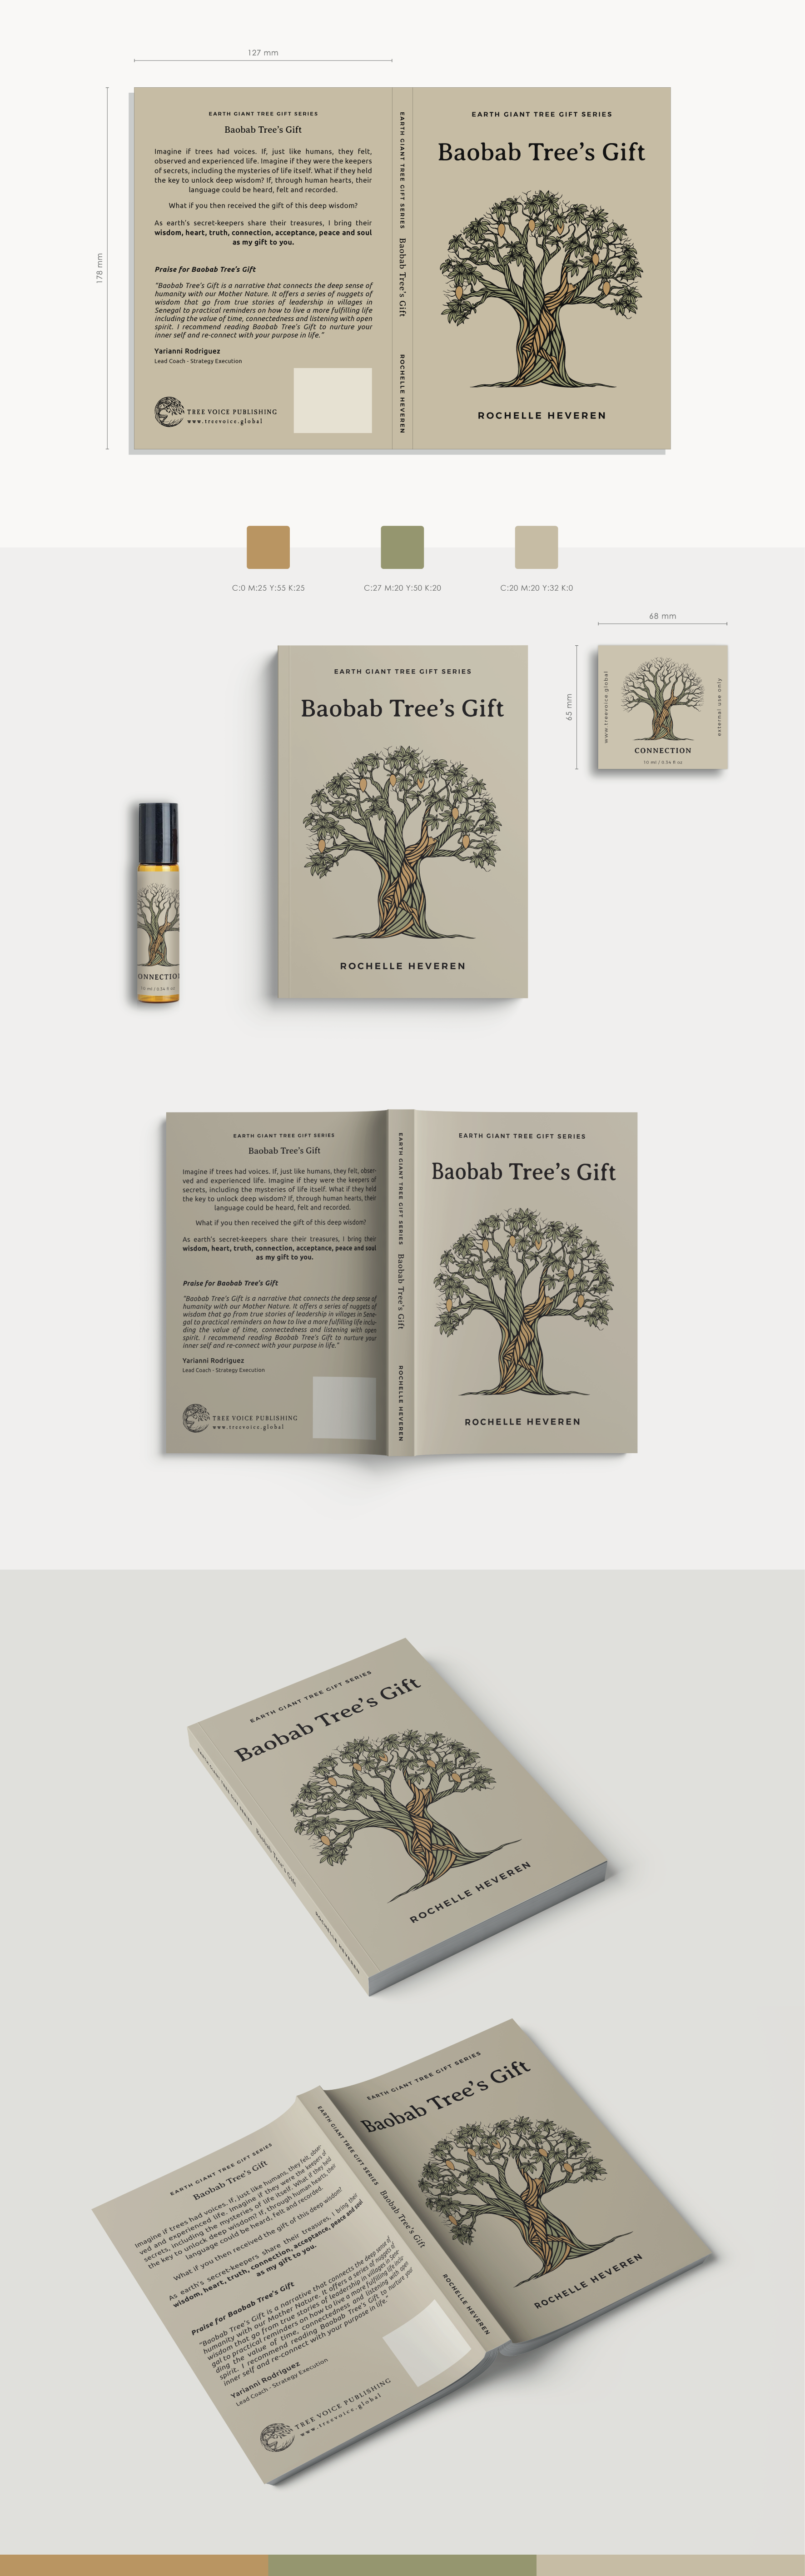 Baobab Tree's Gift - Book Cover and Essential Oil Bottle Sticker